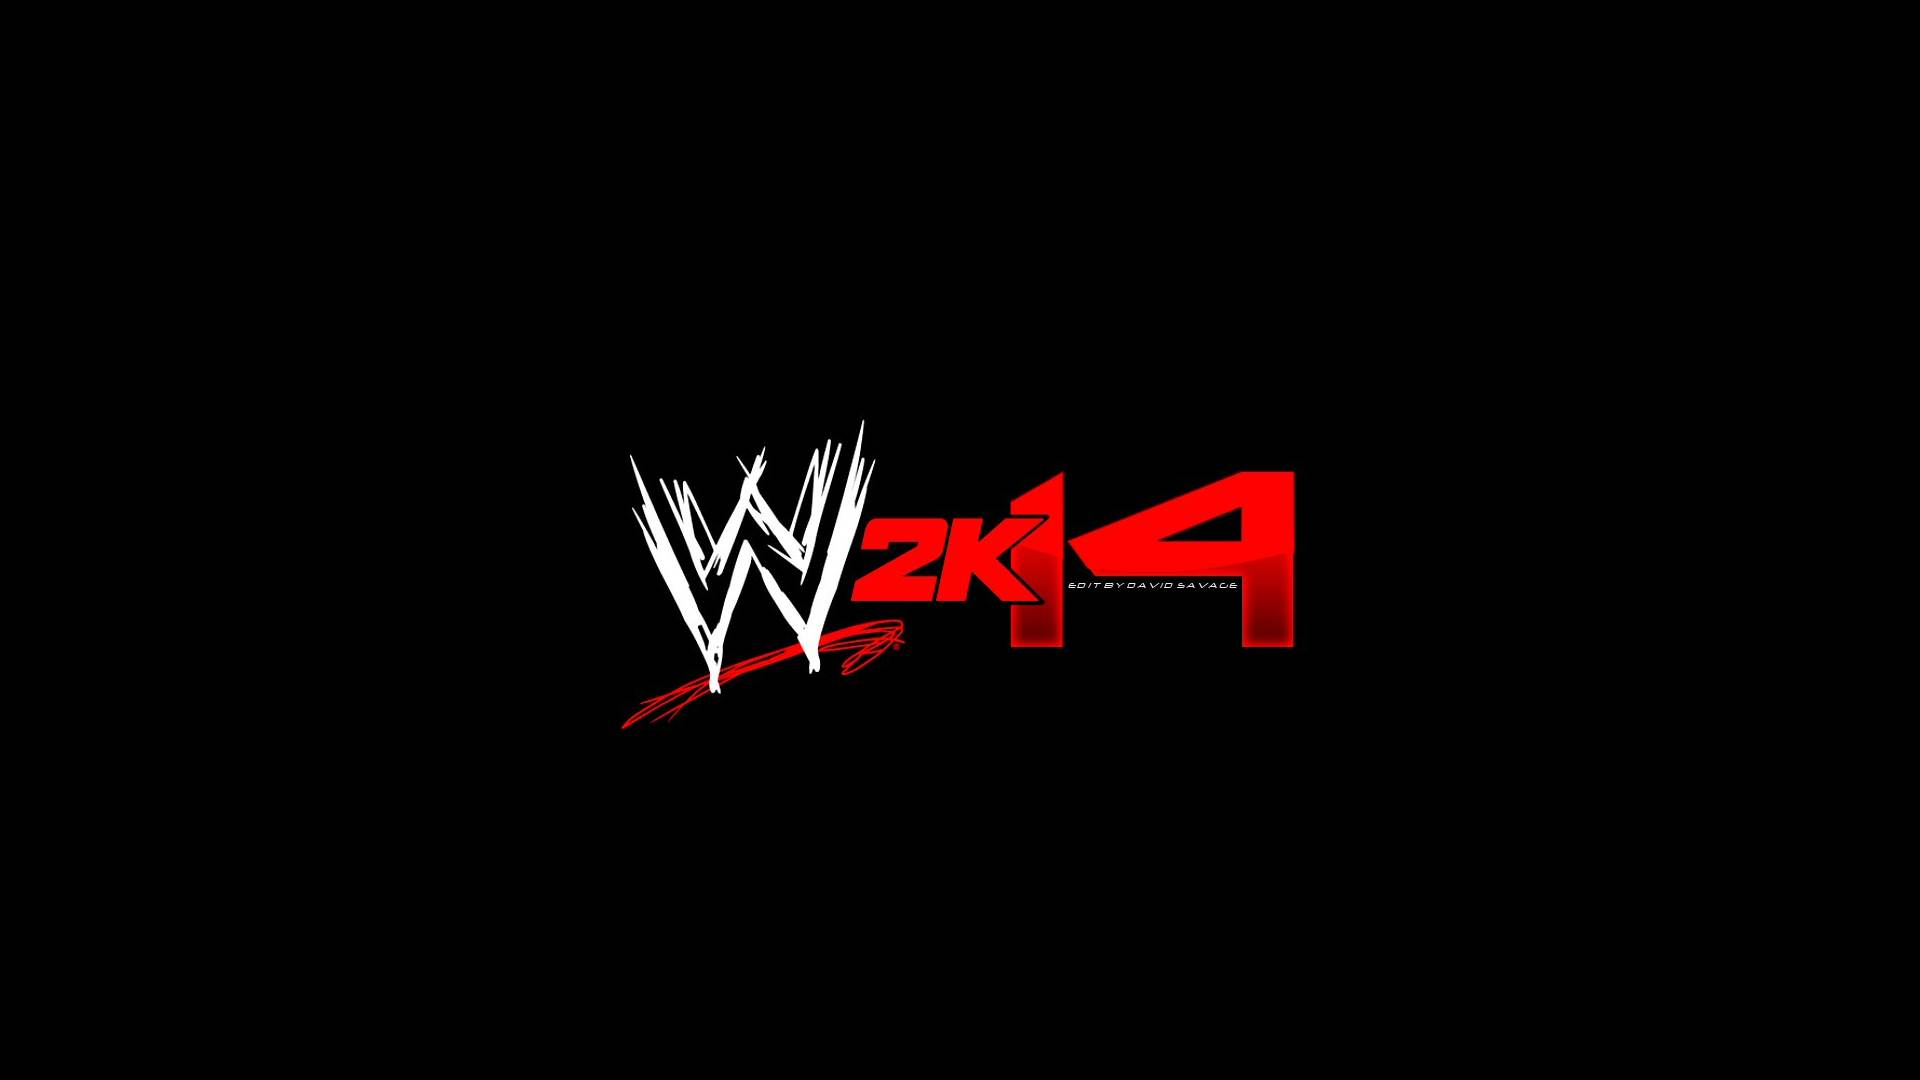 wwe 2k14 wallpapers in hd « GamingBolt: Video Game News